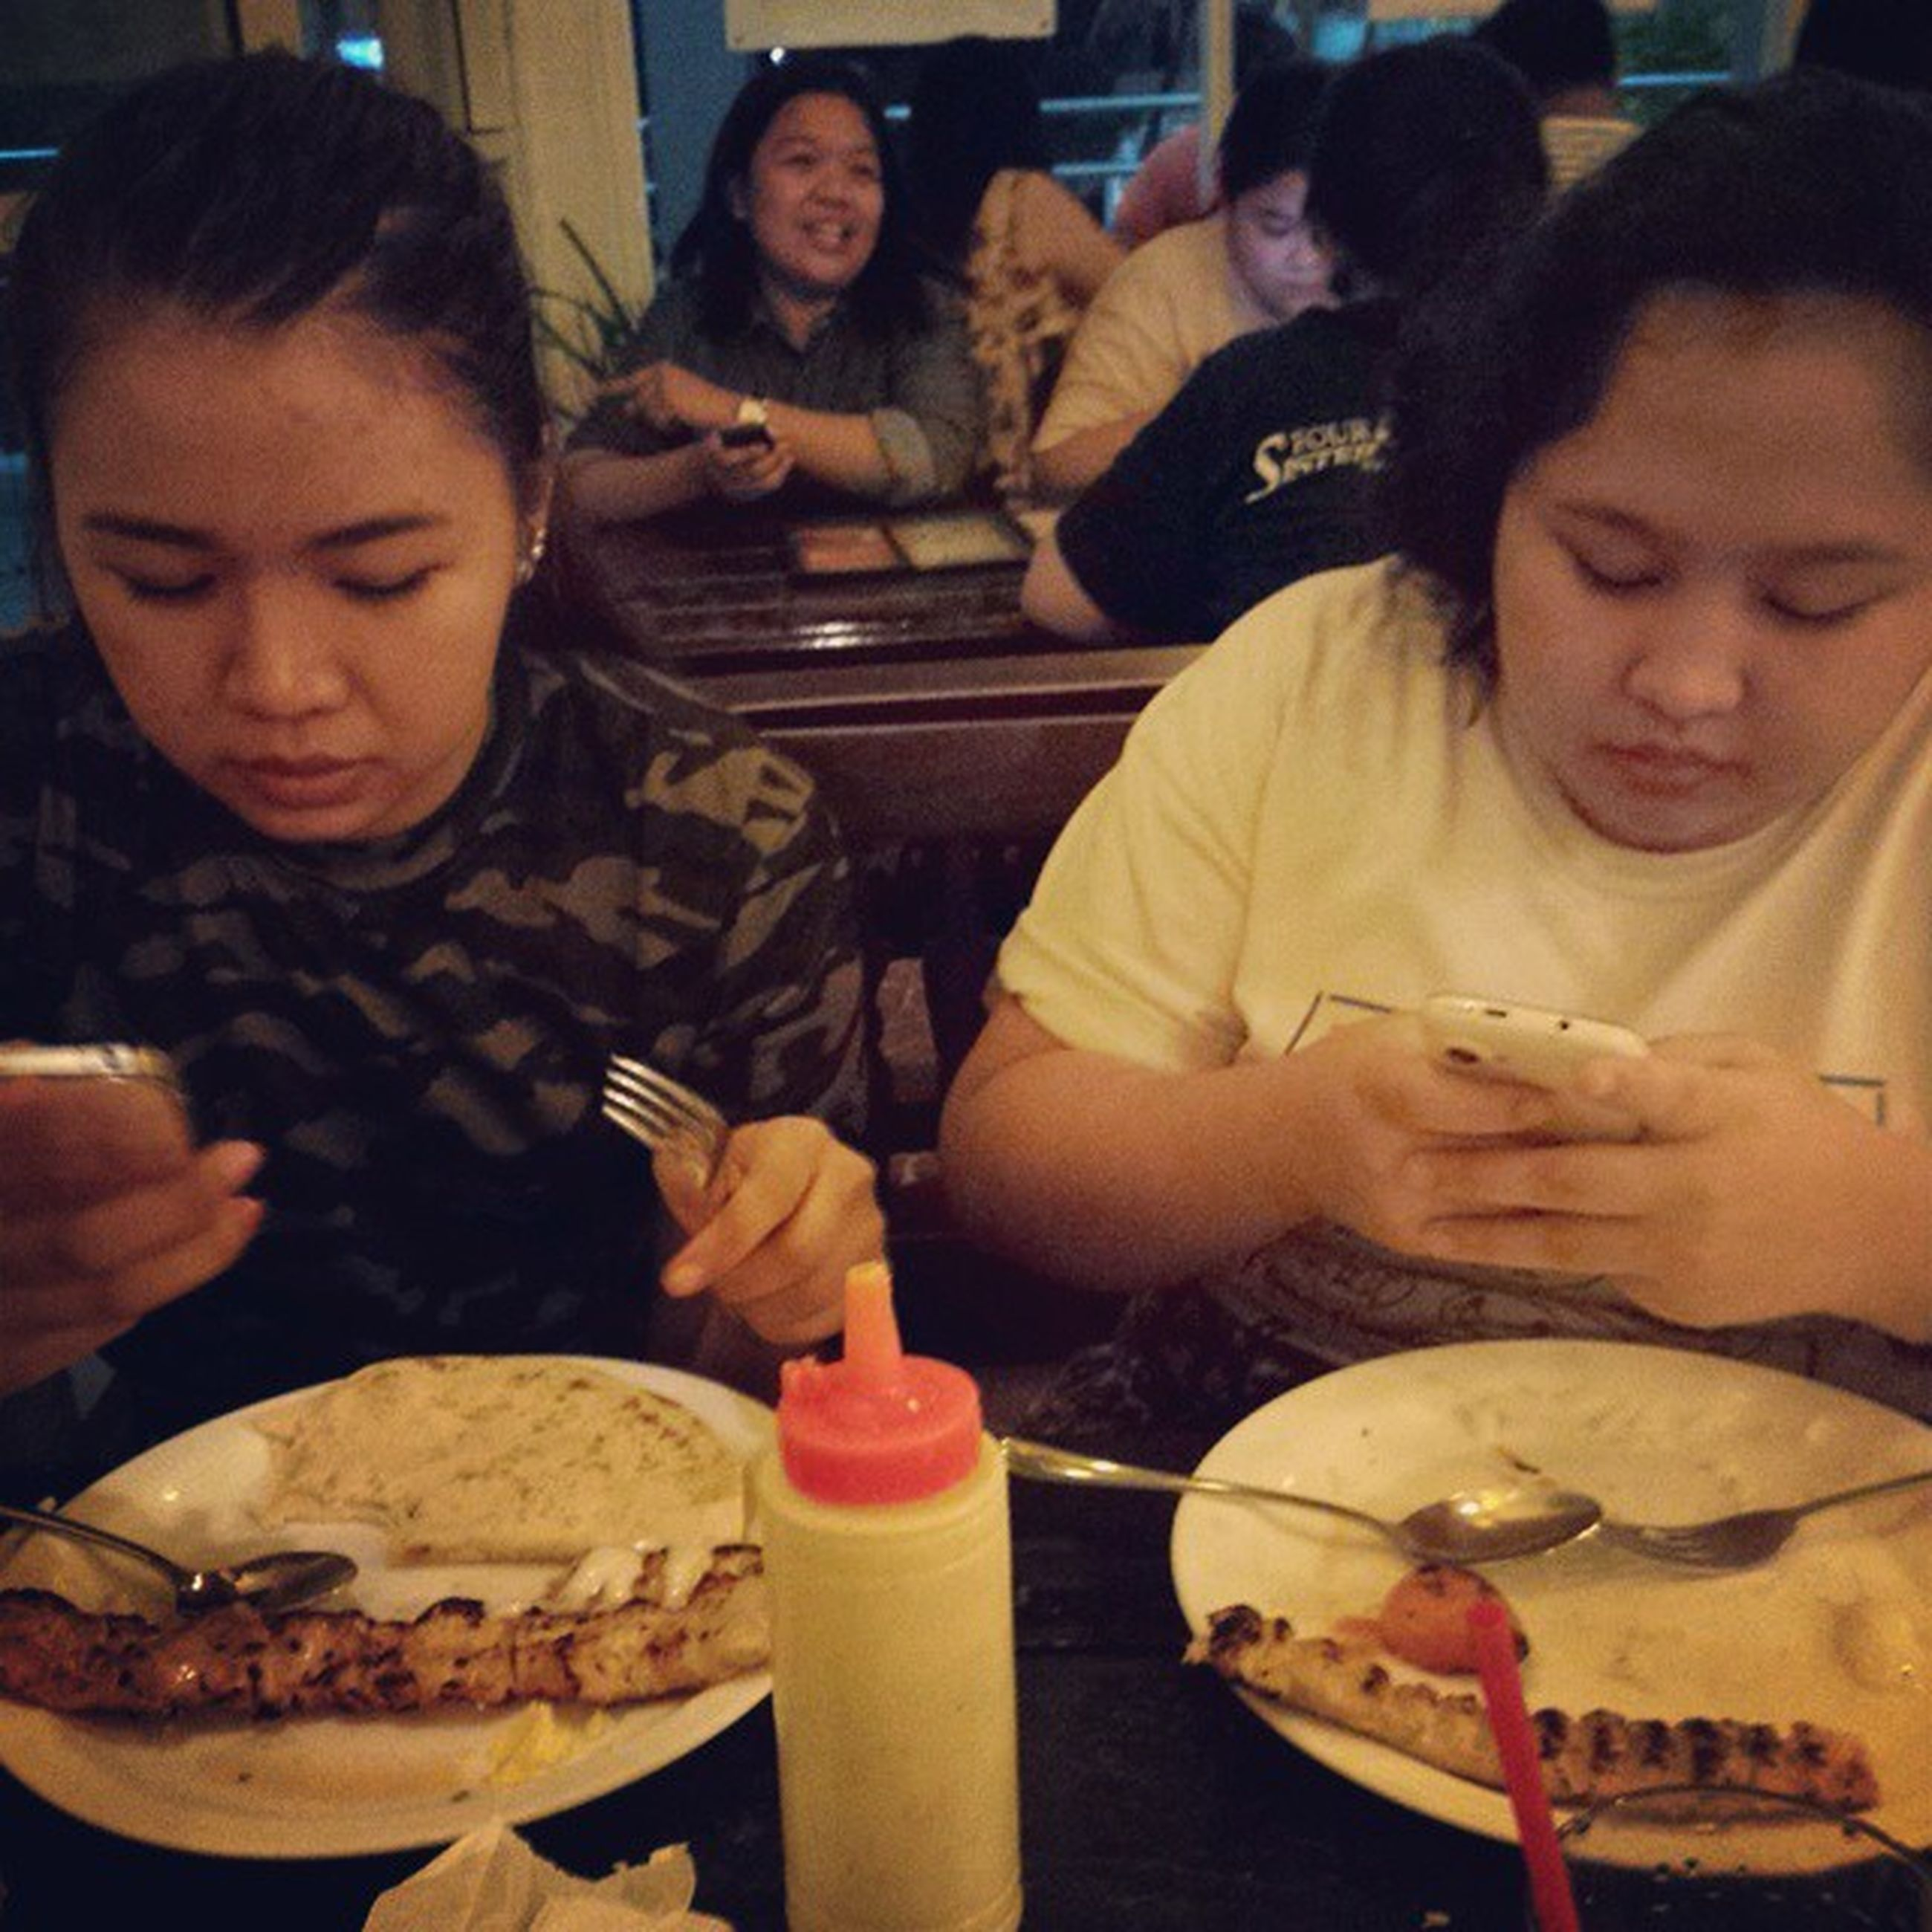 indoors, food and drink, lifestyles, togetherness, person, leisure activity, bonding, food, sitting, portrait, looking at camera, smiling, friendship, table, happiness, casual clothing, restaurant